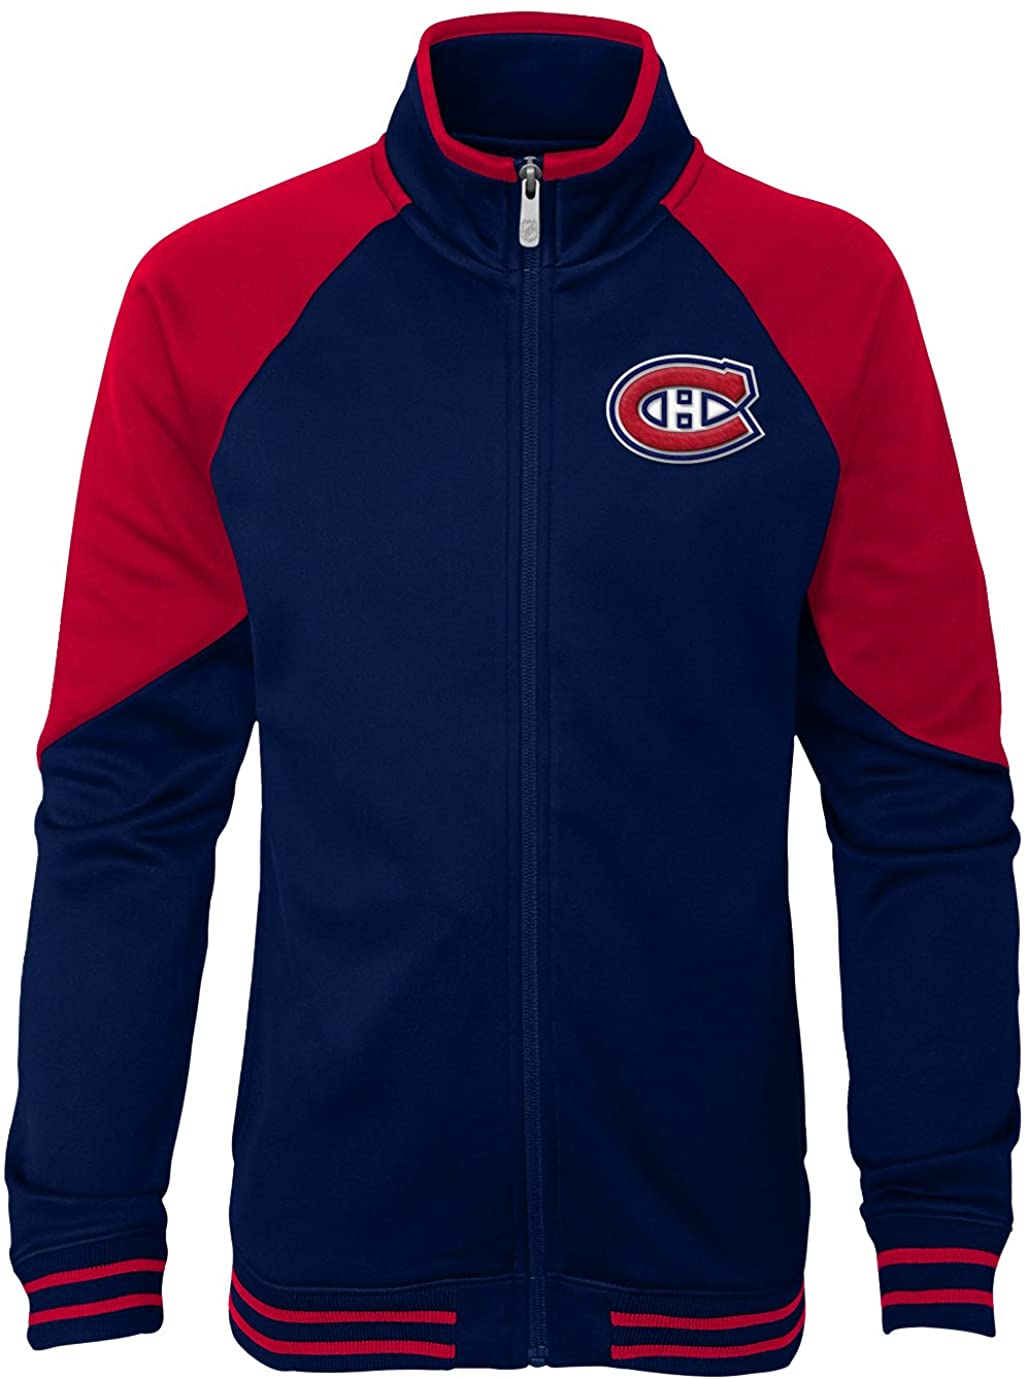 NHL Montreal Canadiens Youth Girls Faceoff Full Zip Jacket, Medium(10-12), True Navy